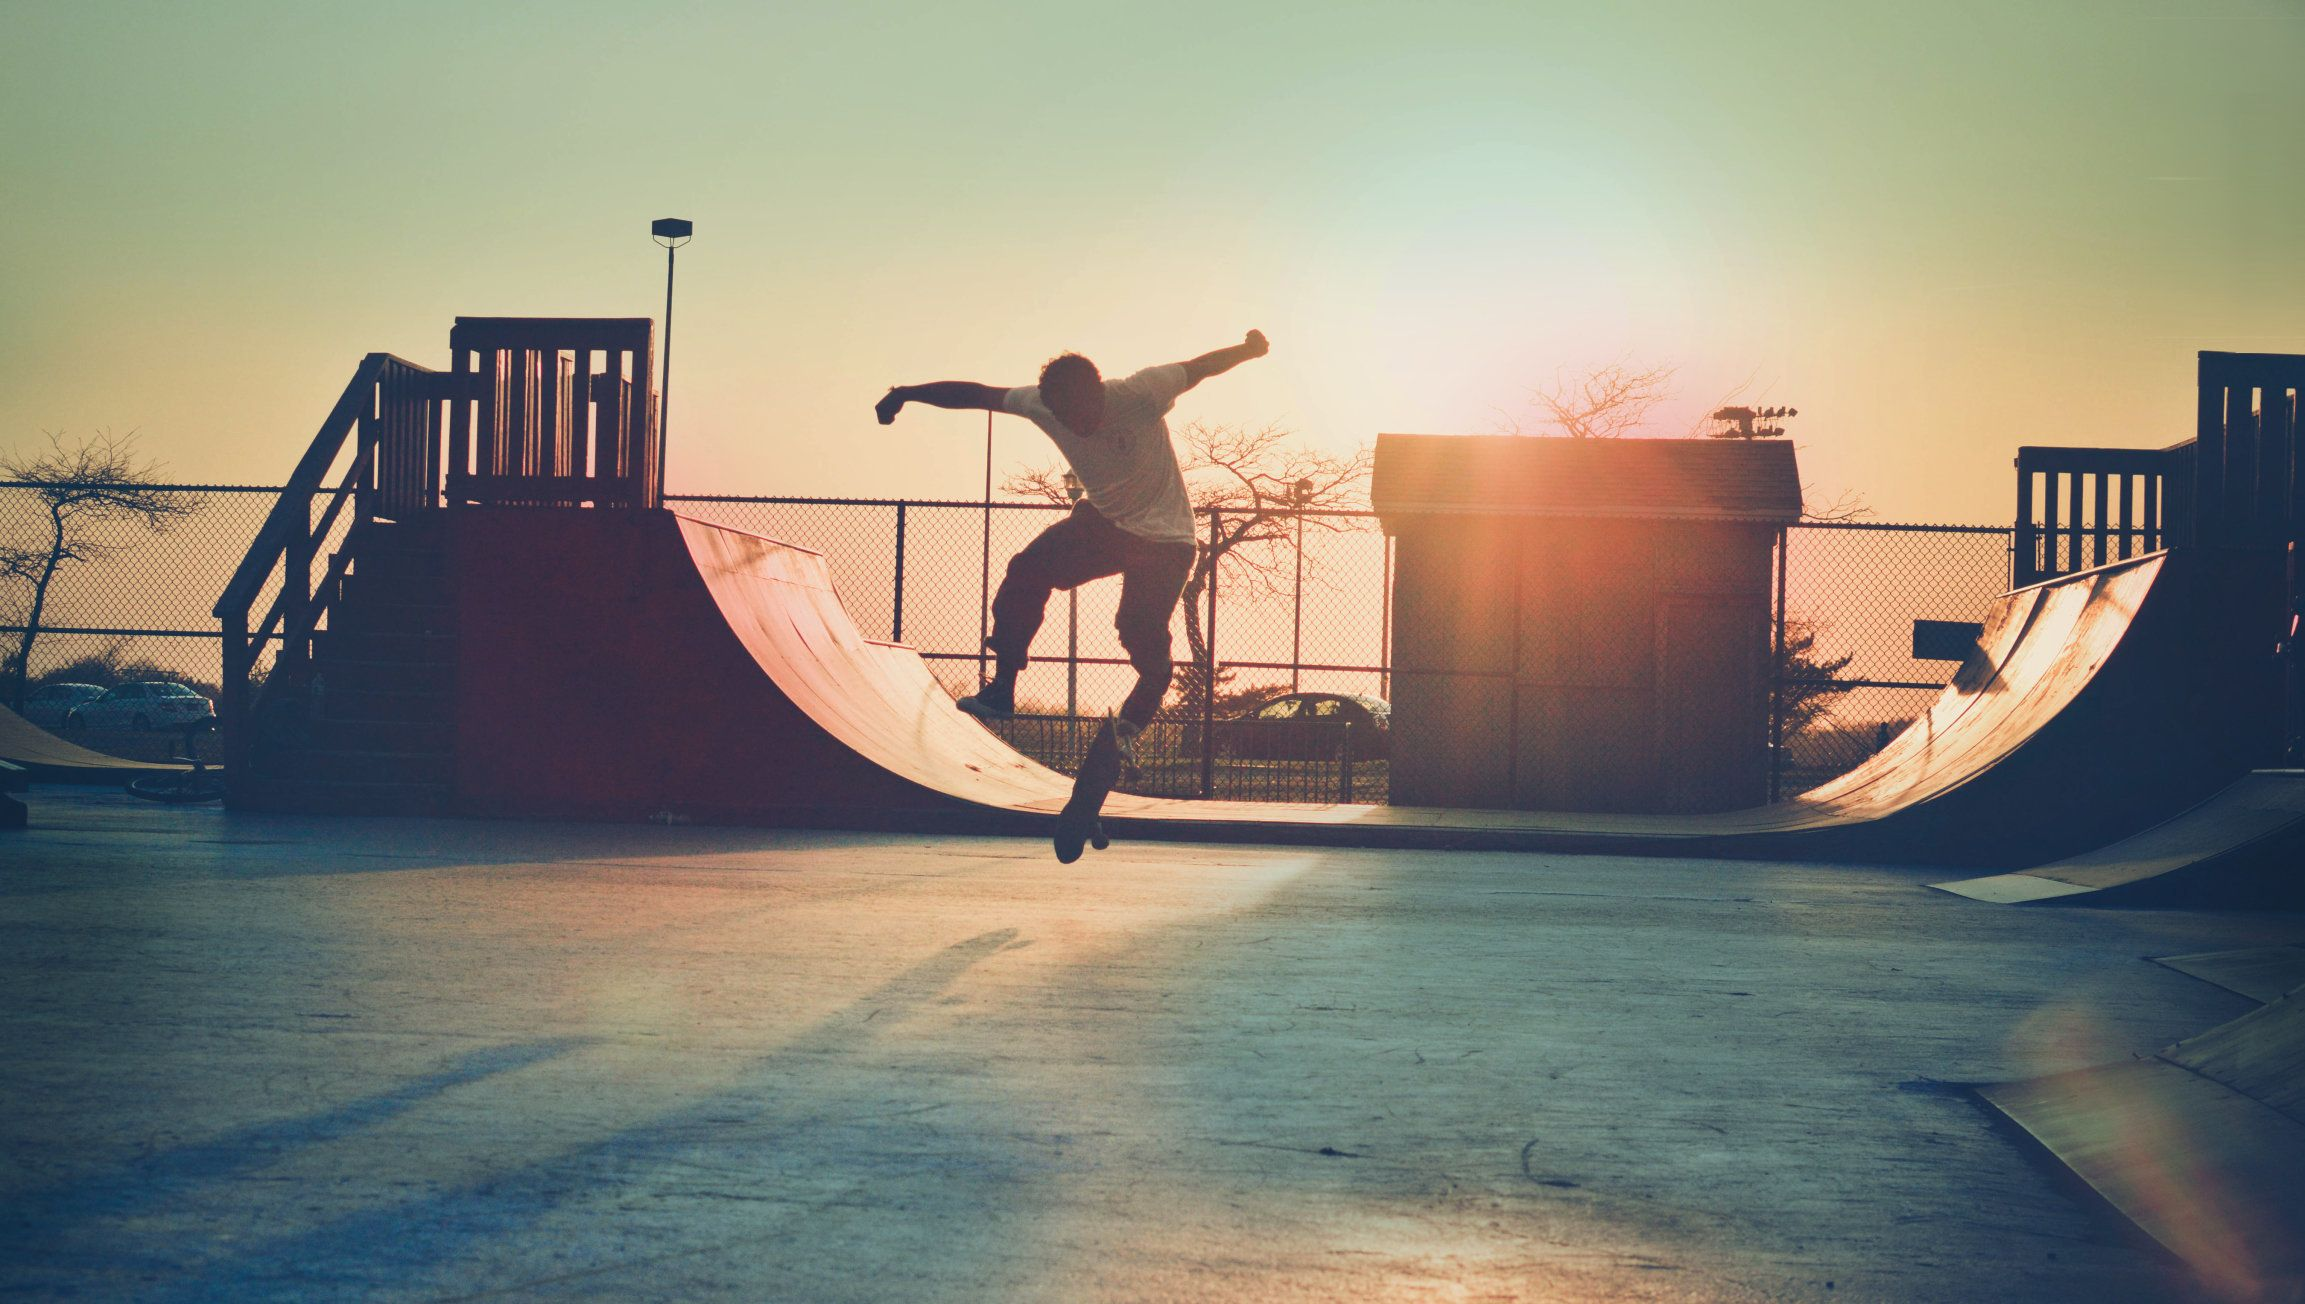 Every day, 176 kids go the emergency room with skateboarding injuries. Eighty-nine percent of thoseinjured were males.